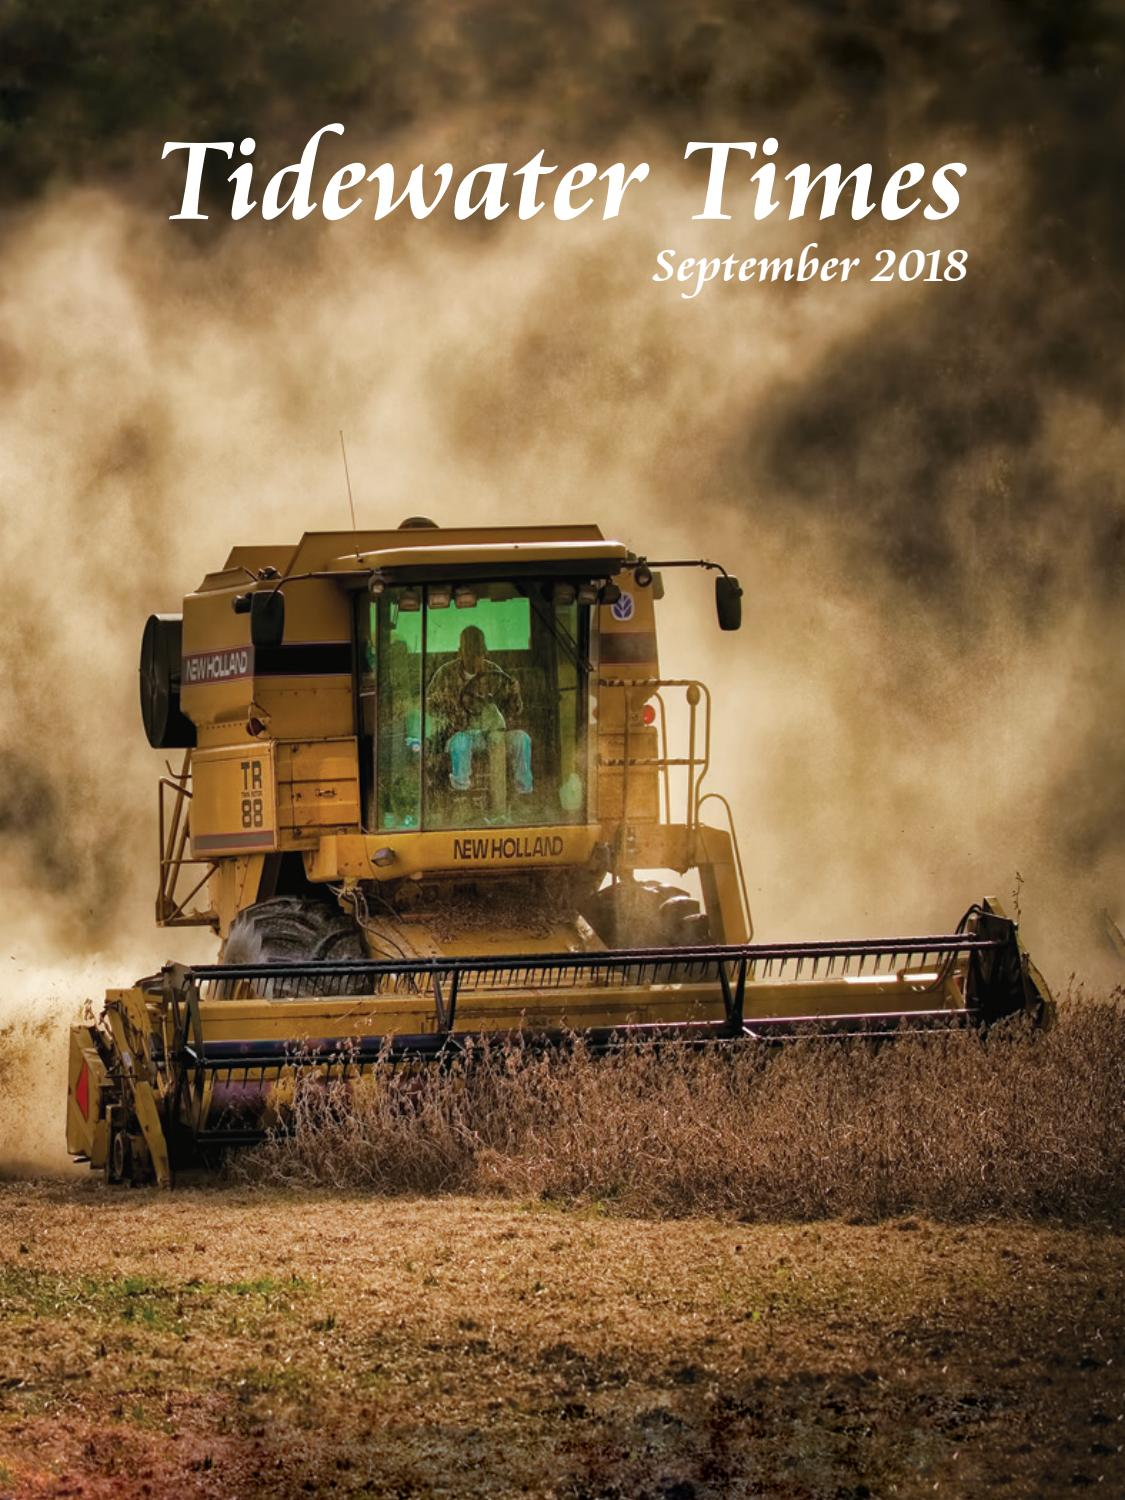 Tidewater Times September 2018 by Tidewater Times - issuu 087cb6aaafa